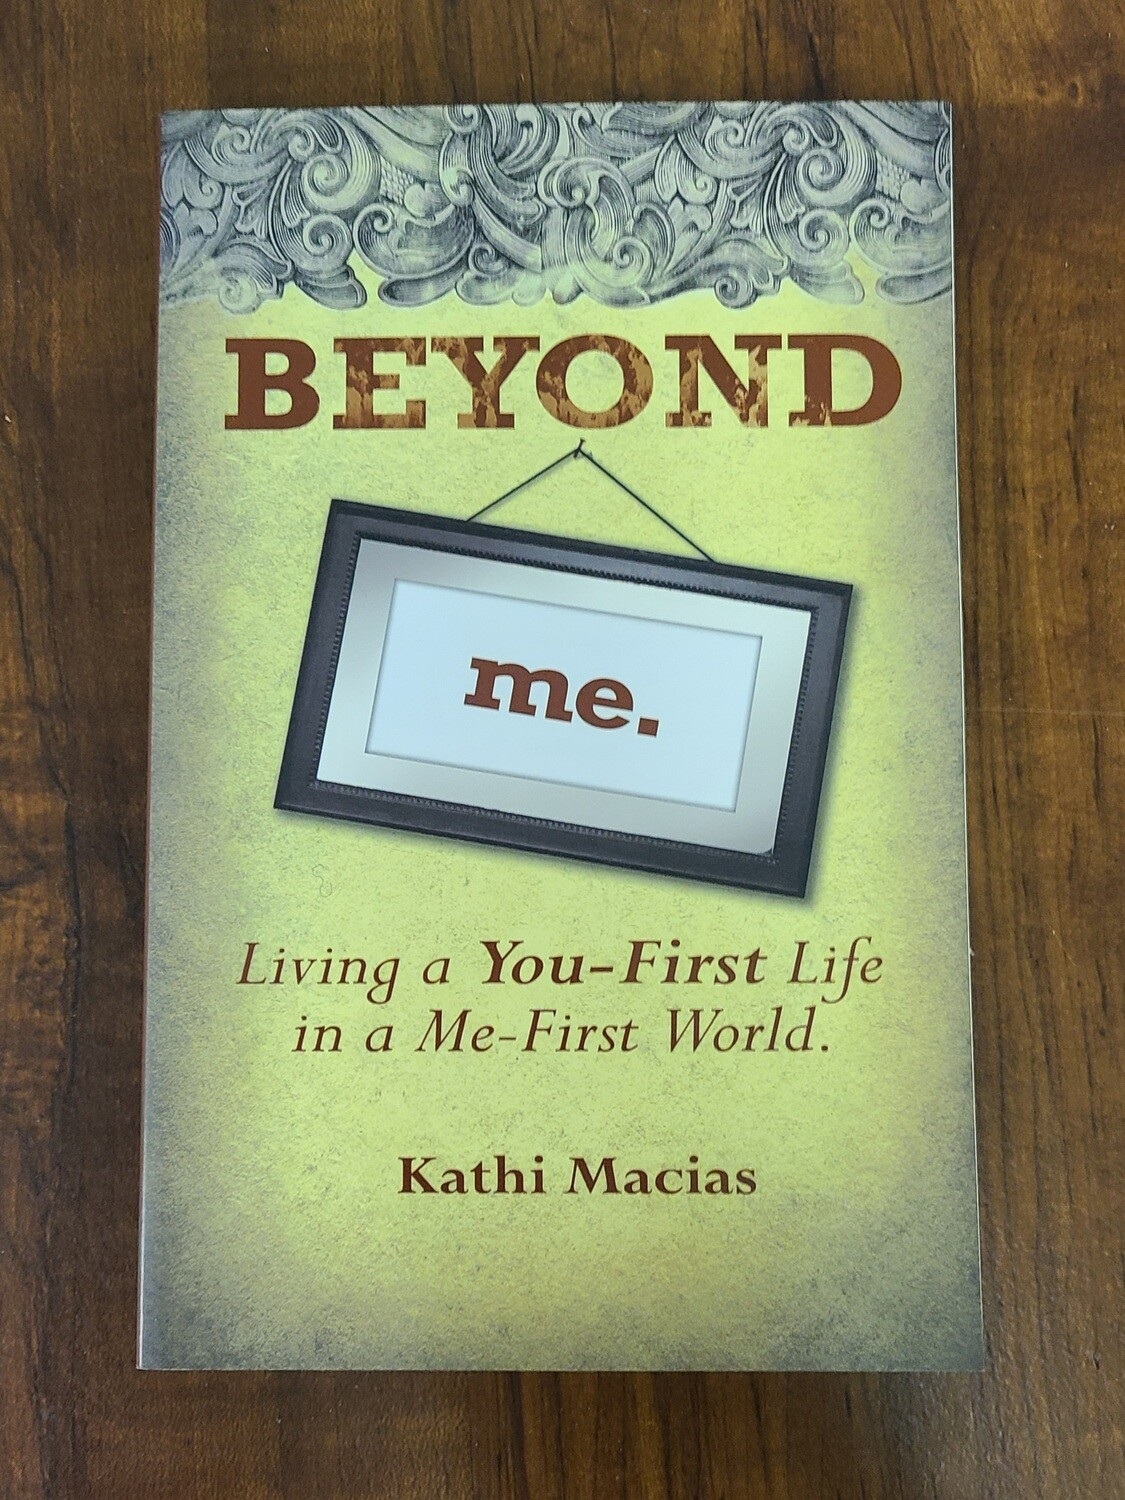 Beyond Me: Living a You-First Life in a Me-First World by Kathi Macias